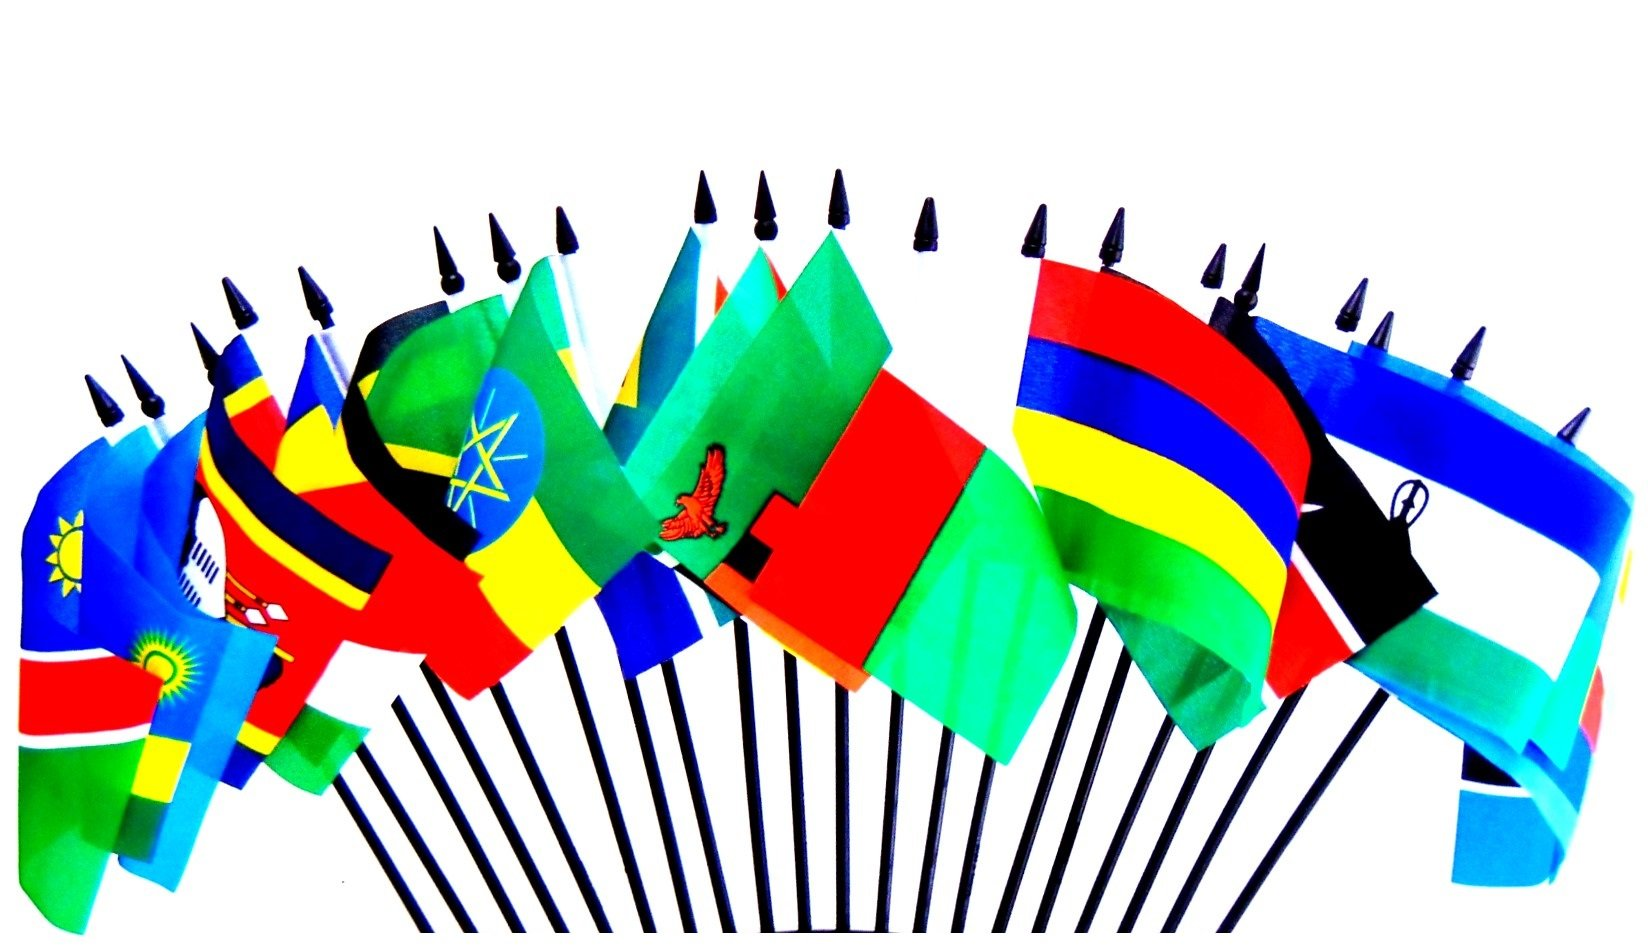 Southeast Africa World Flag SET-20 Polyester 4''x6'' Flags, One Flag for Each Country in Southeast Side of Africa, 4x6 Miniature Desk & Table Flags, Small Mini Stick Flags